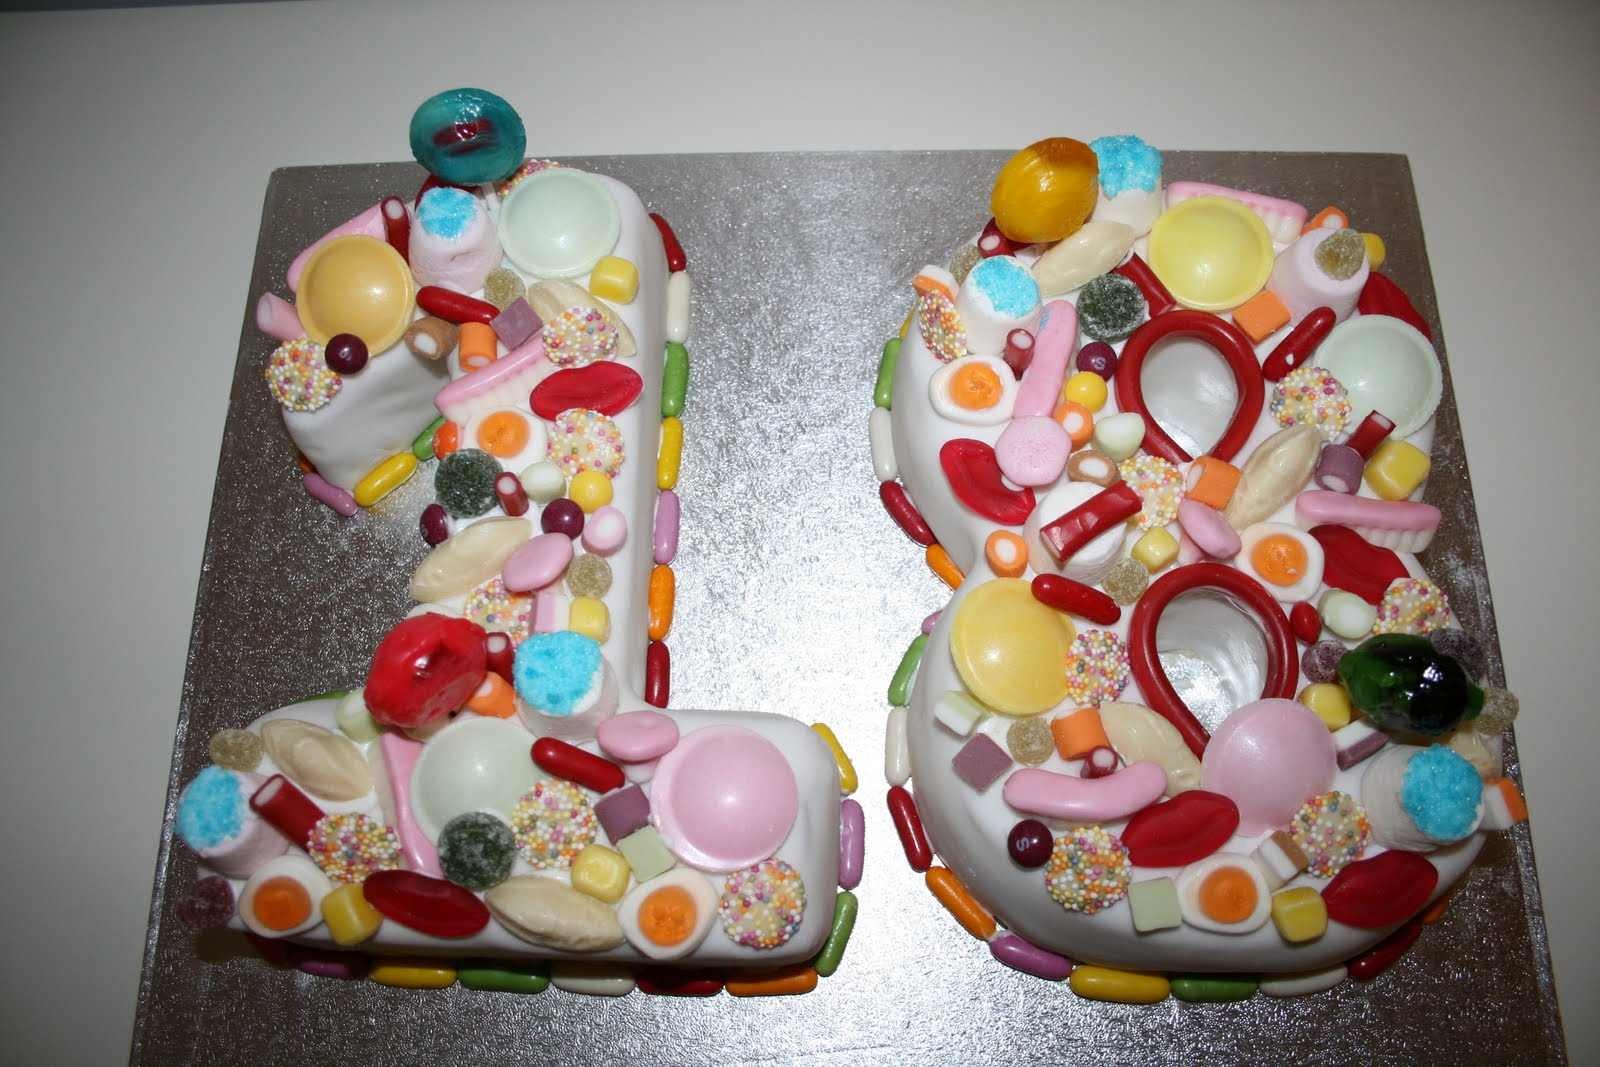 Special Occasion Cakes Old Skool Sweets 18th Birthday Cake